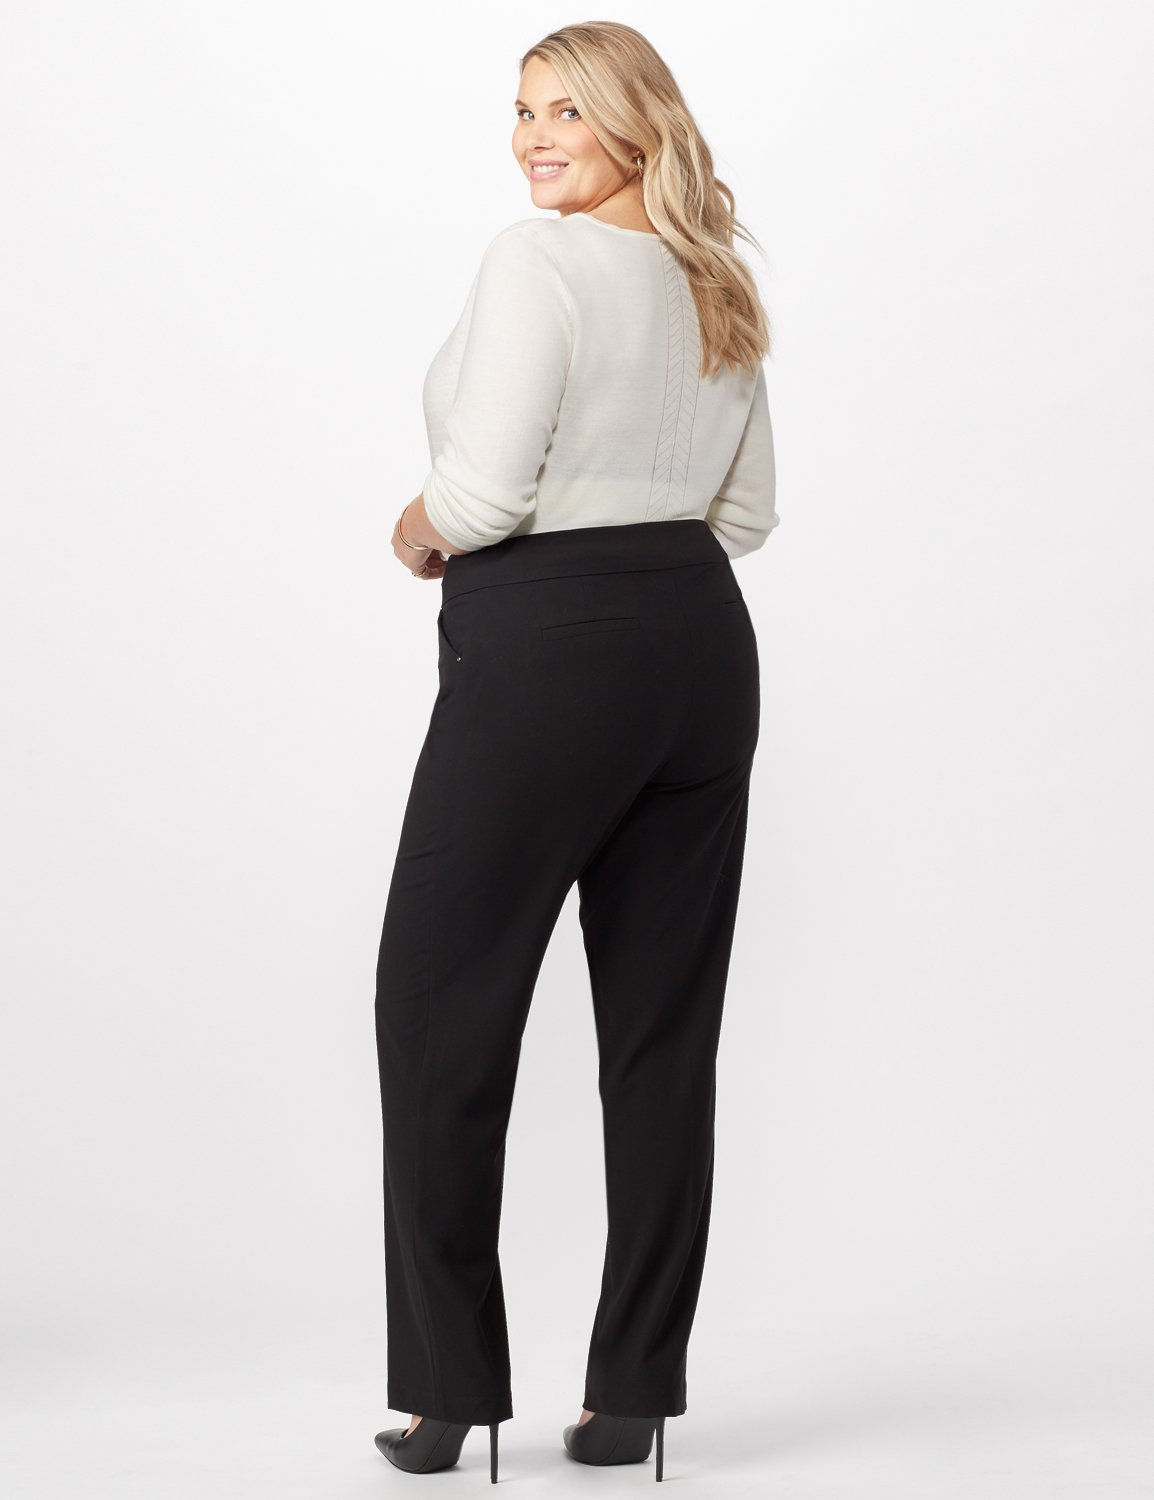 *PRE-SALE* Secret Agent Tummy Control Pants Cateye Rivet - Tall Length -Black - Back